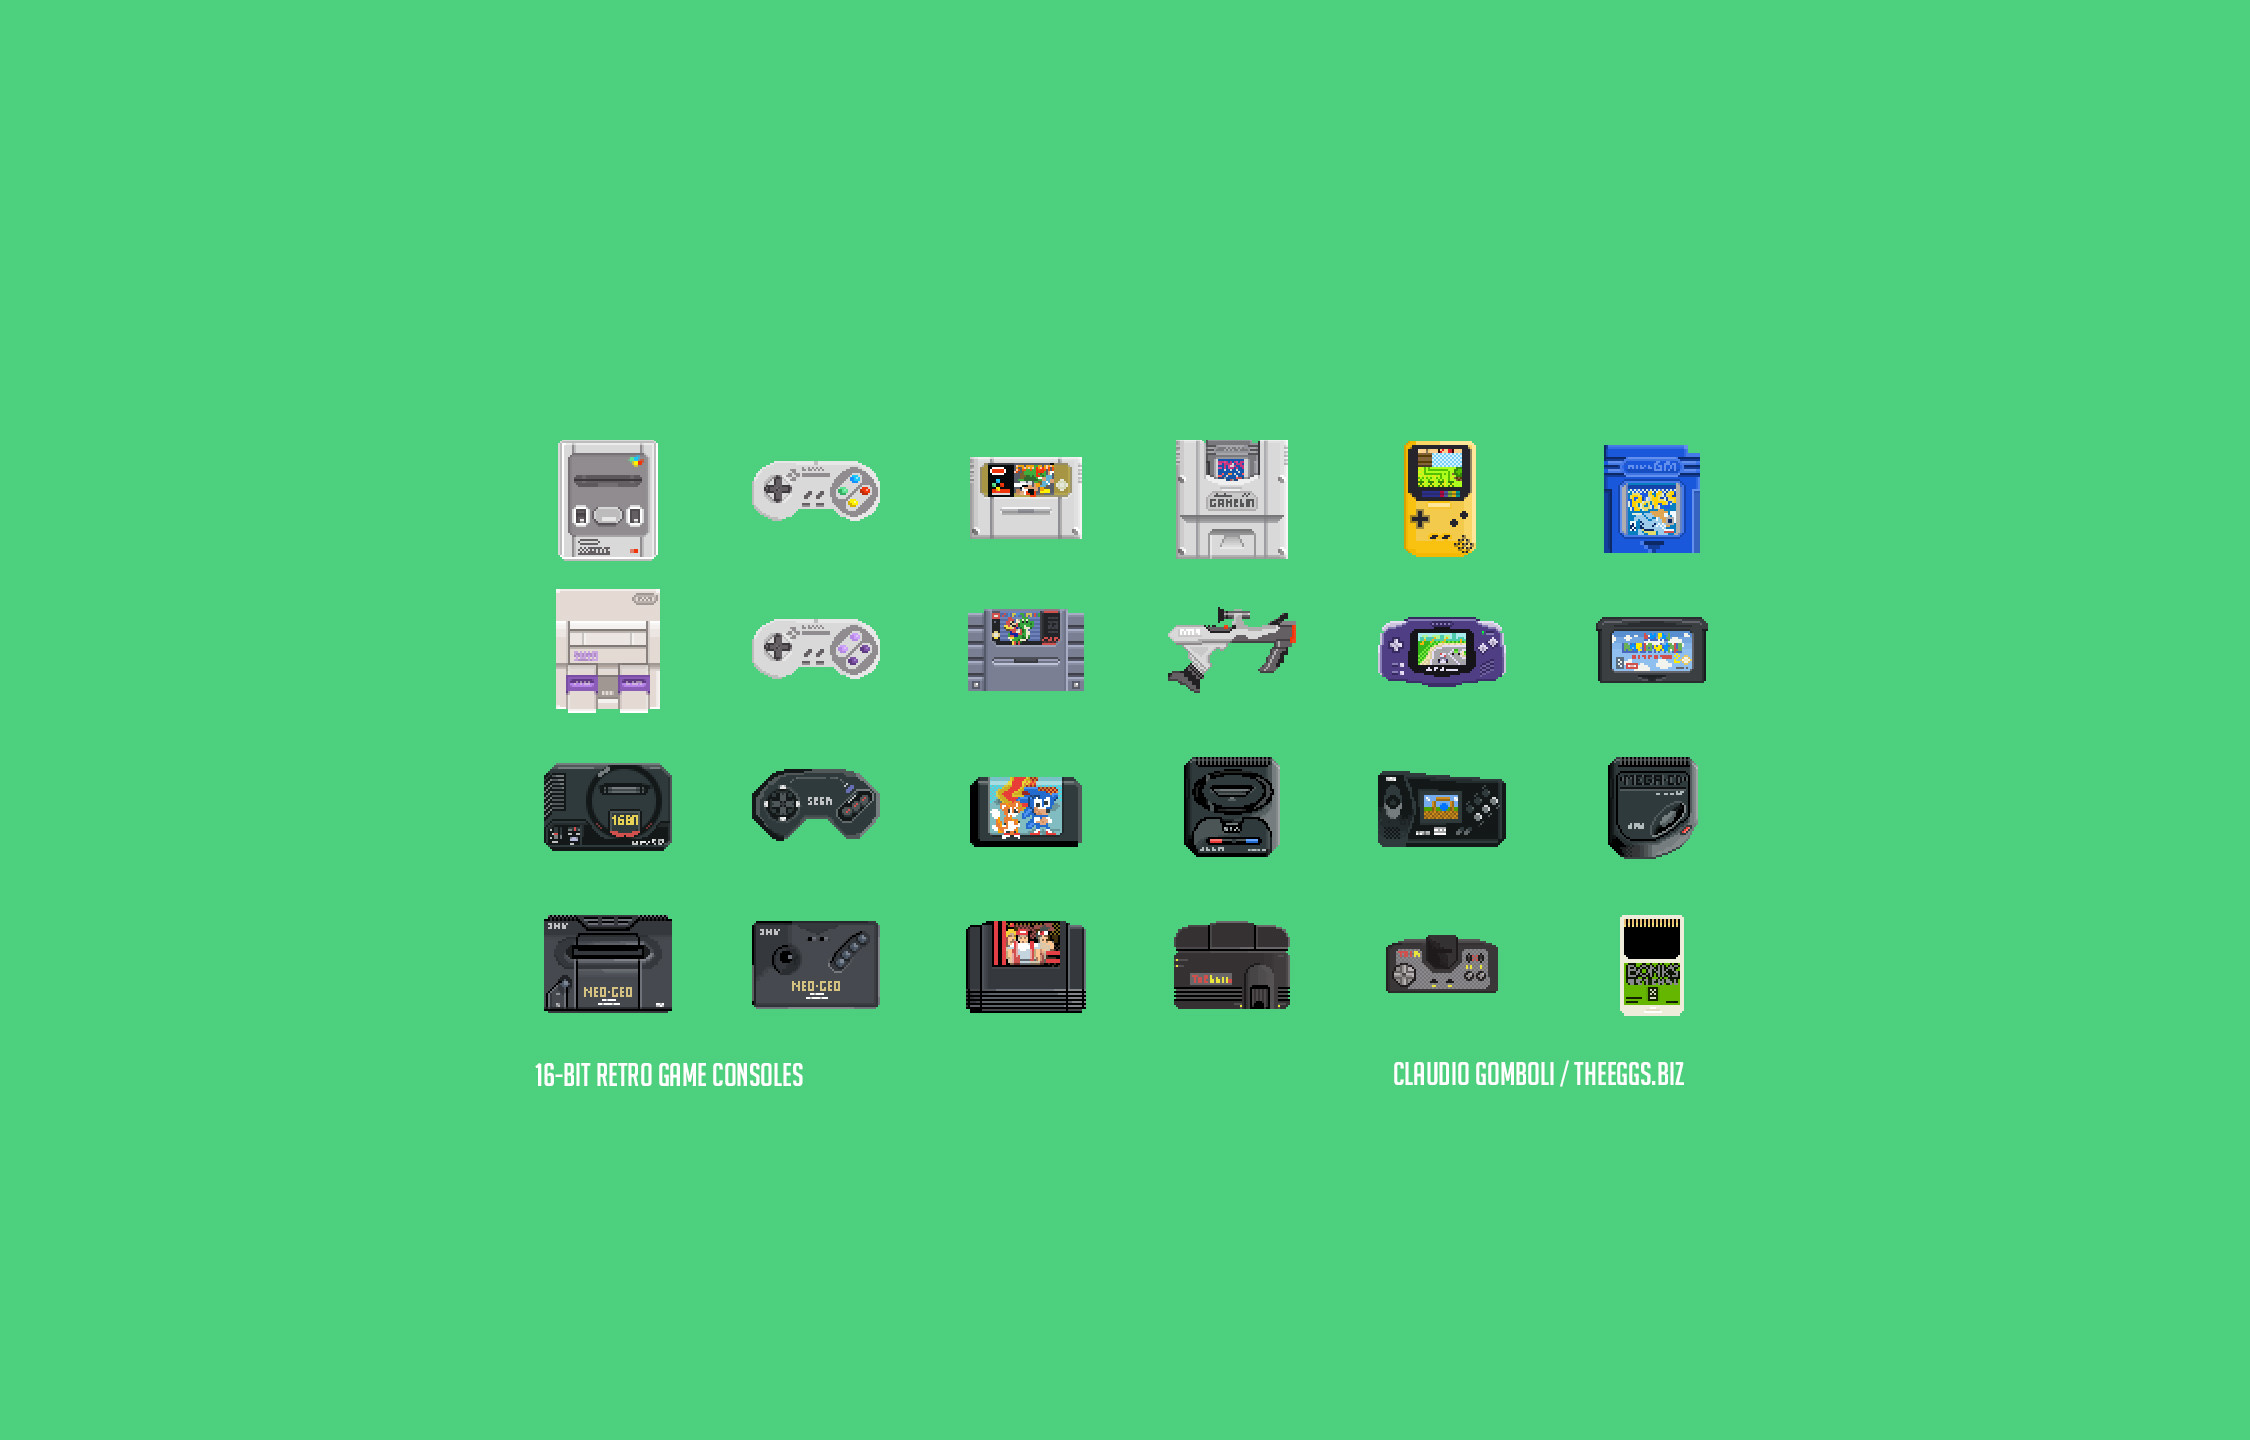 download 16 bit retro game console wallpapers for these devices